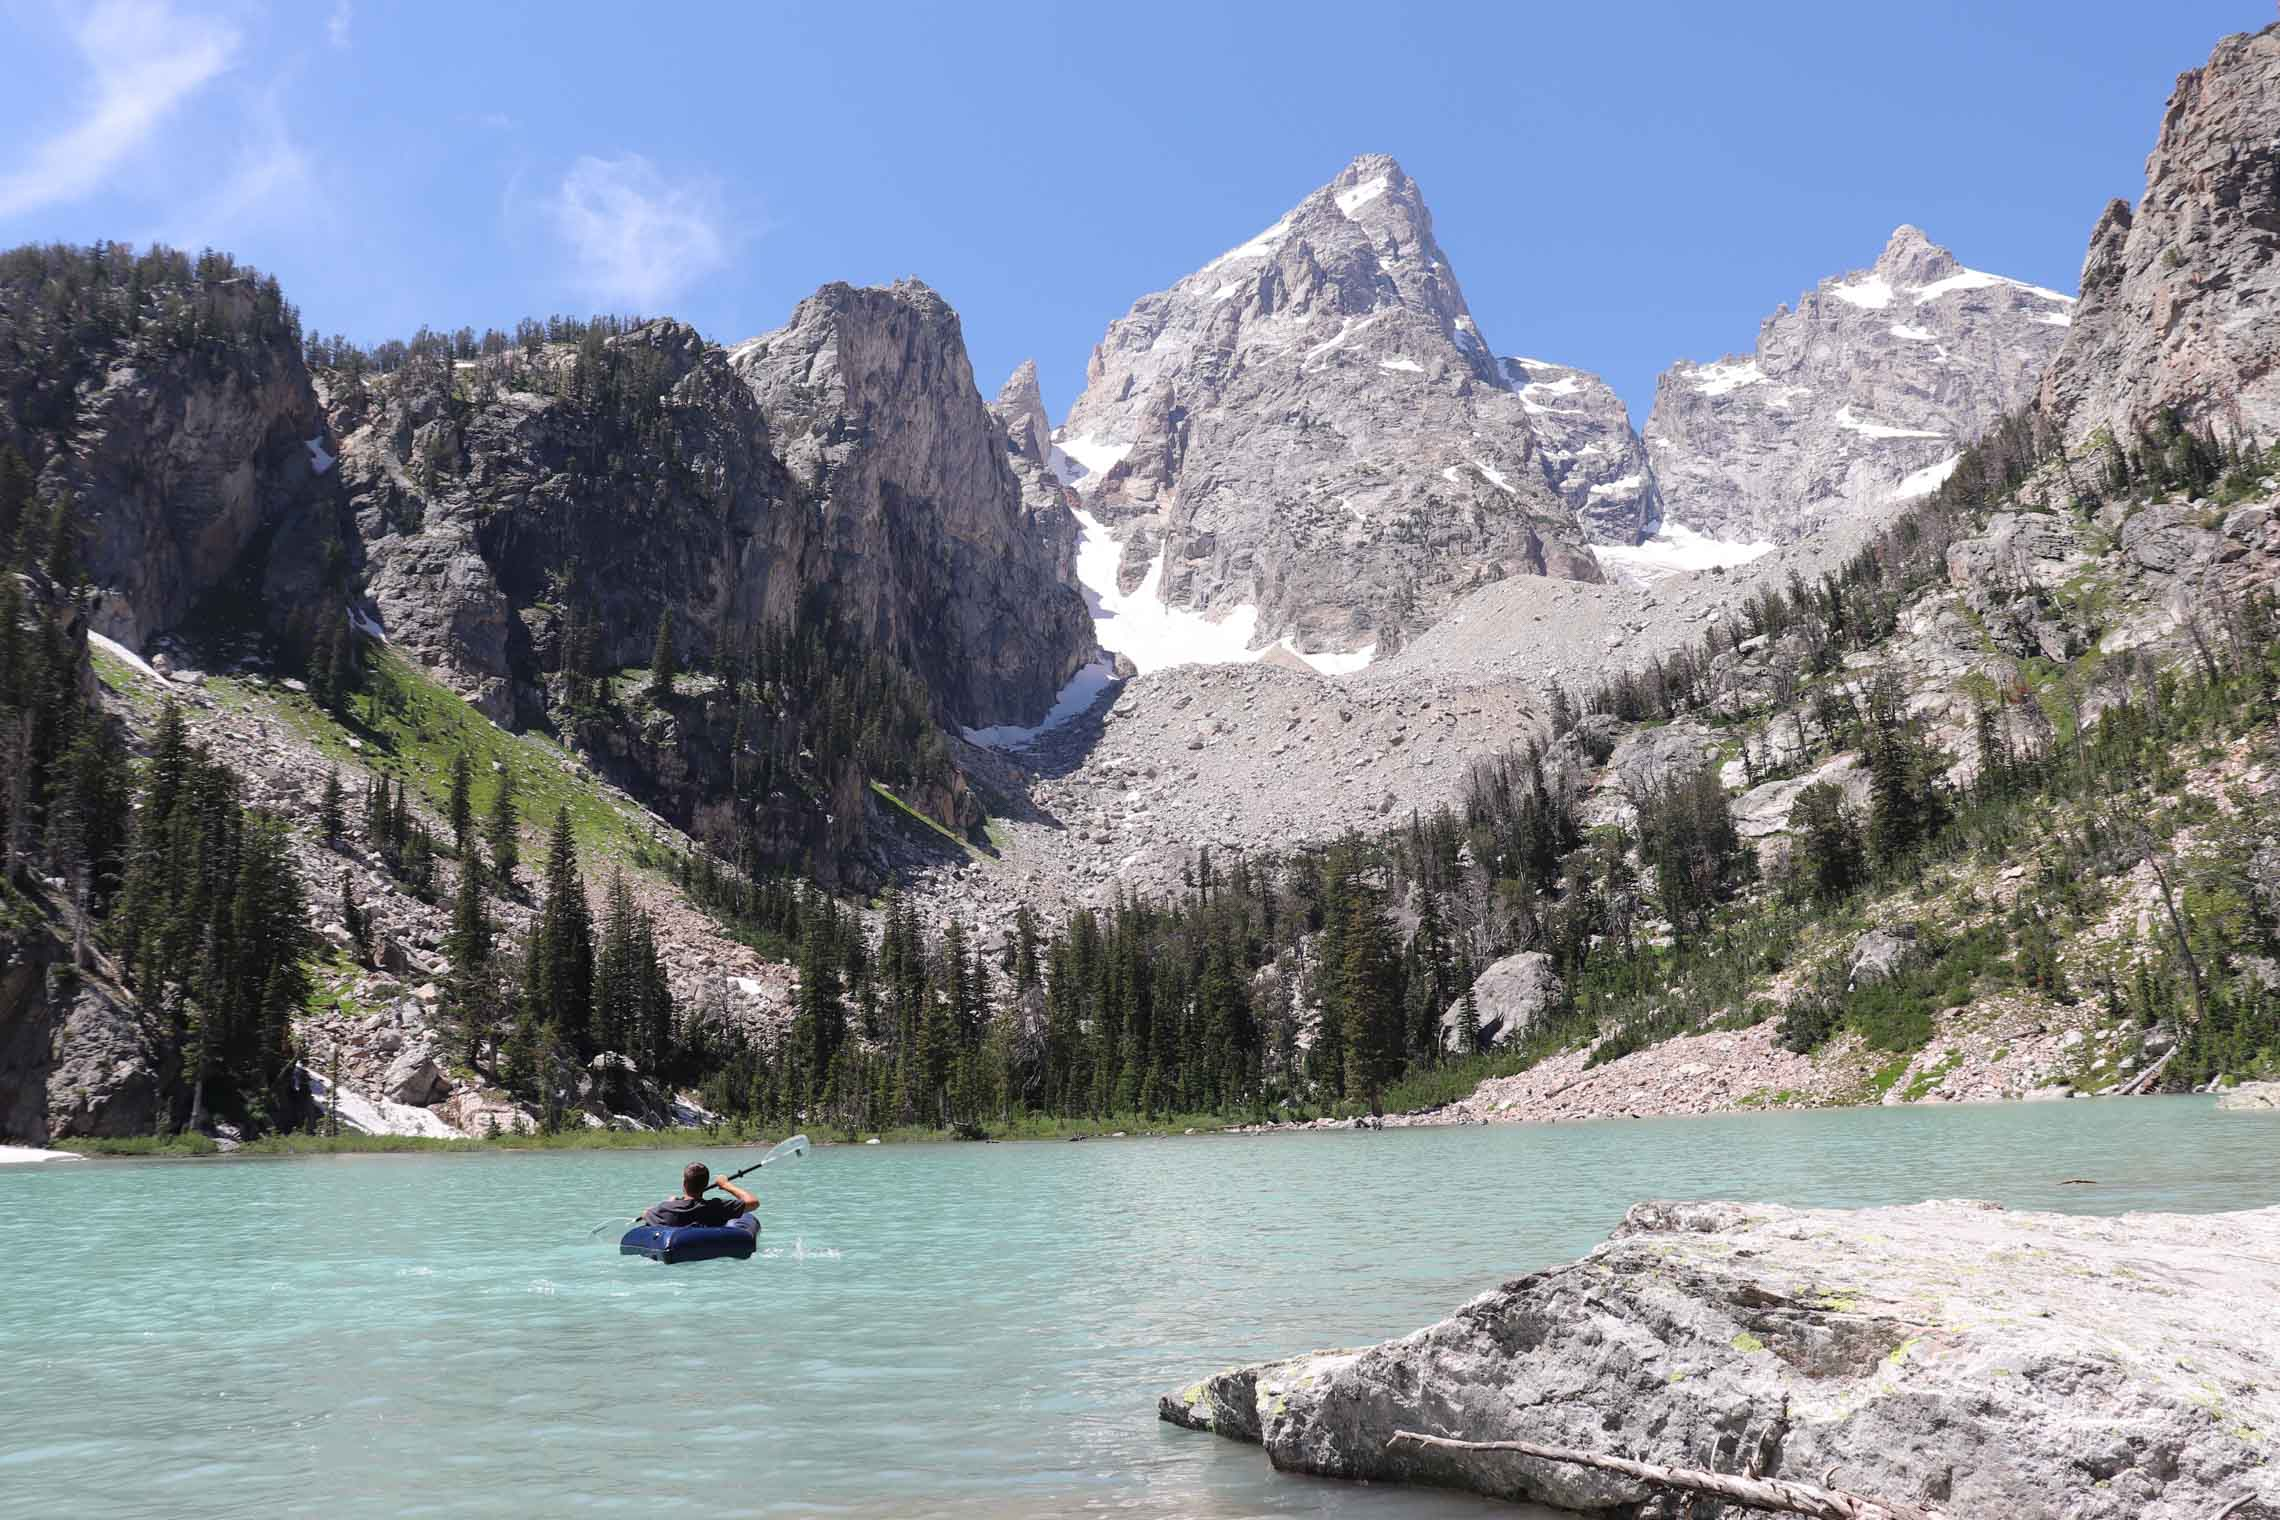 Man packrafting on crystal clear water with snow capped mountains in the background